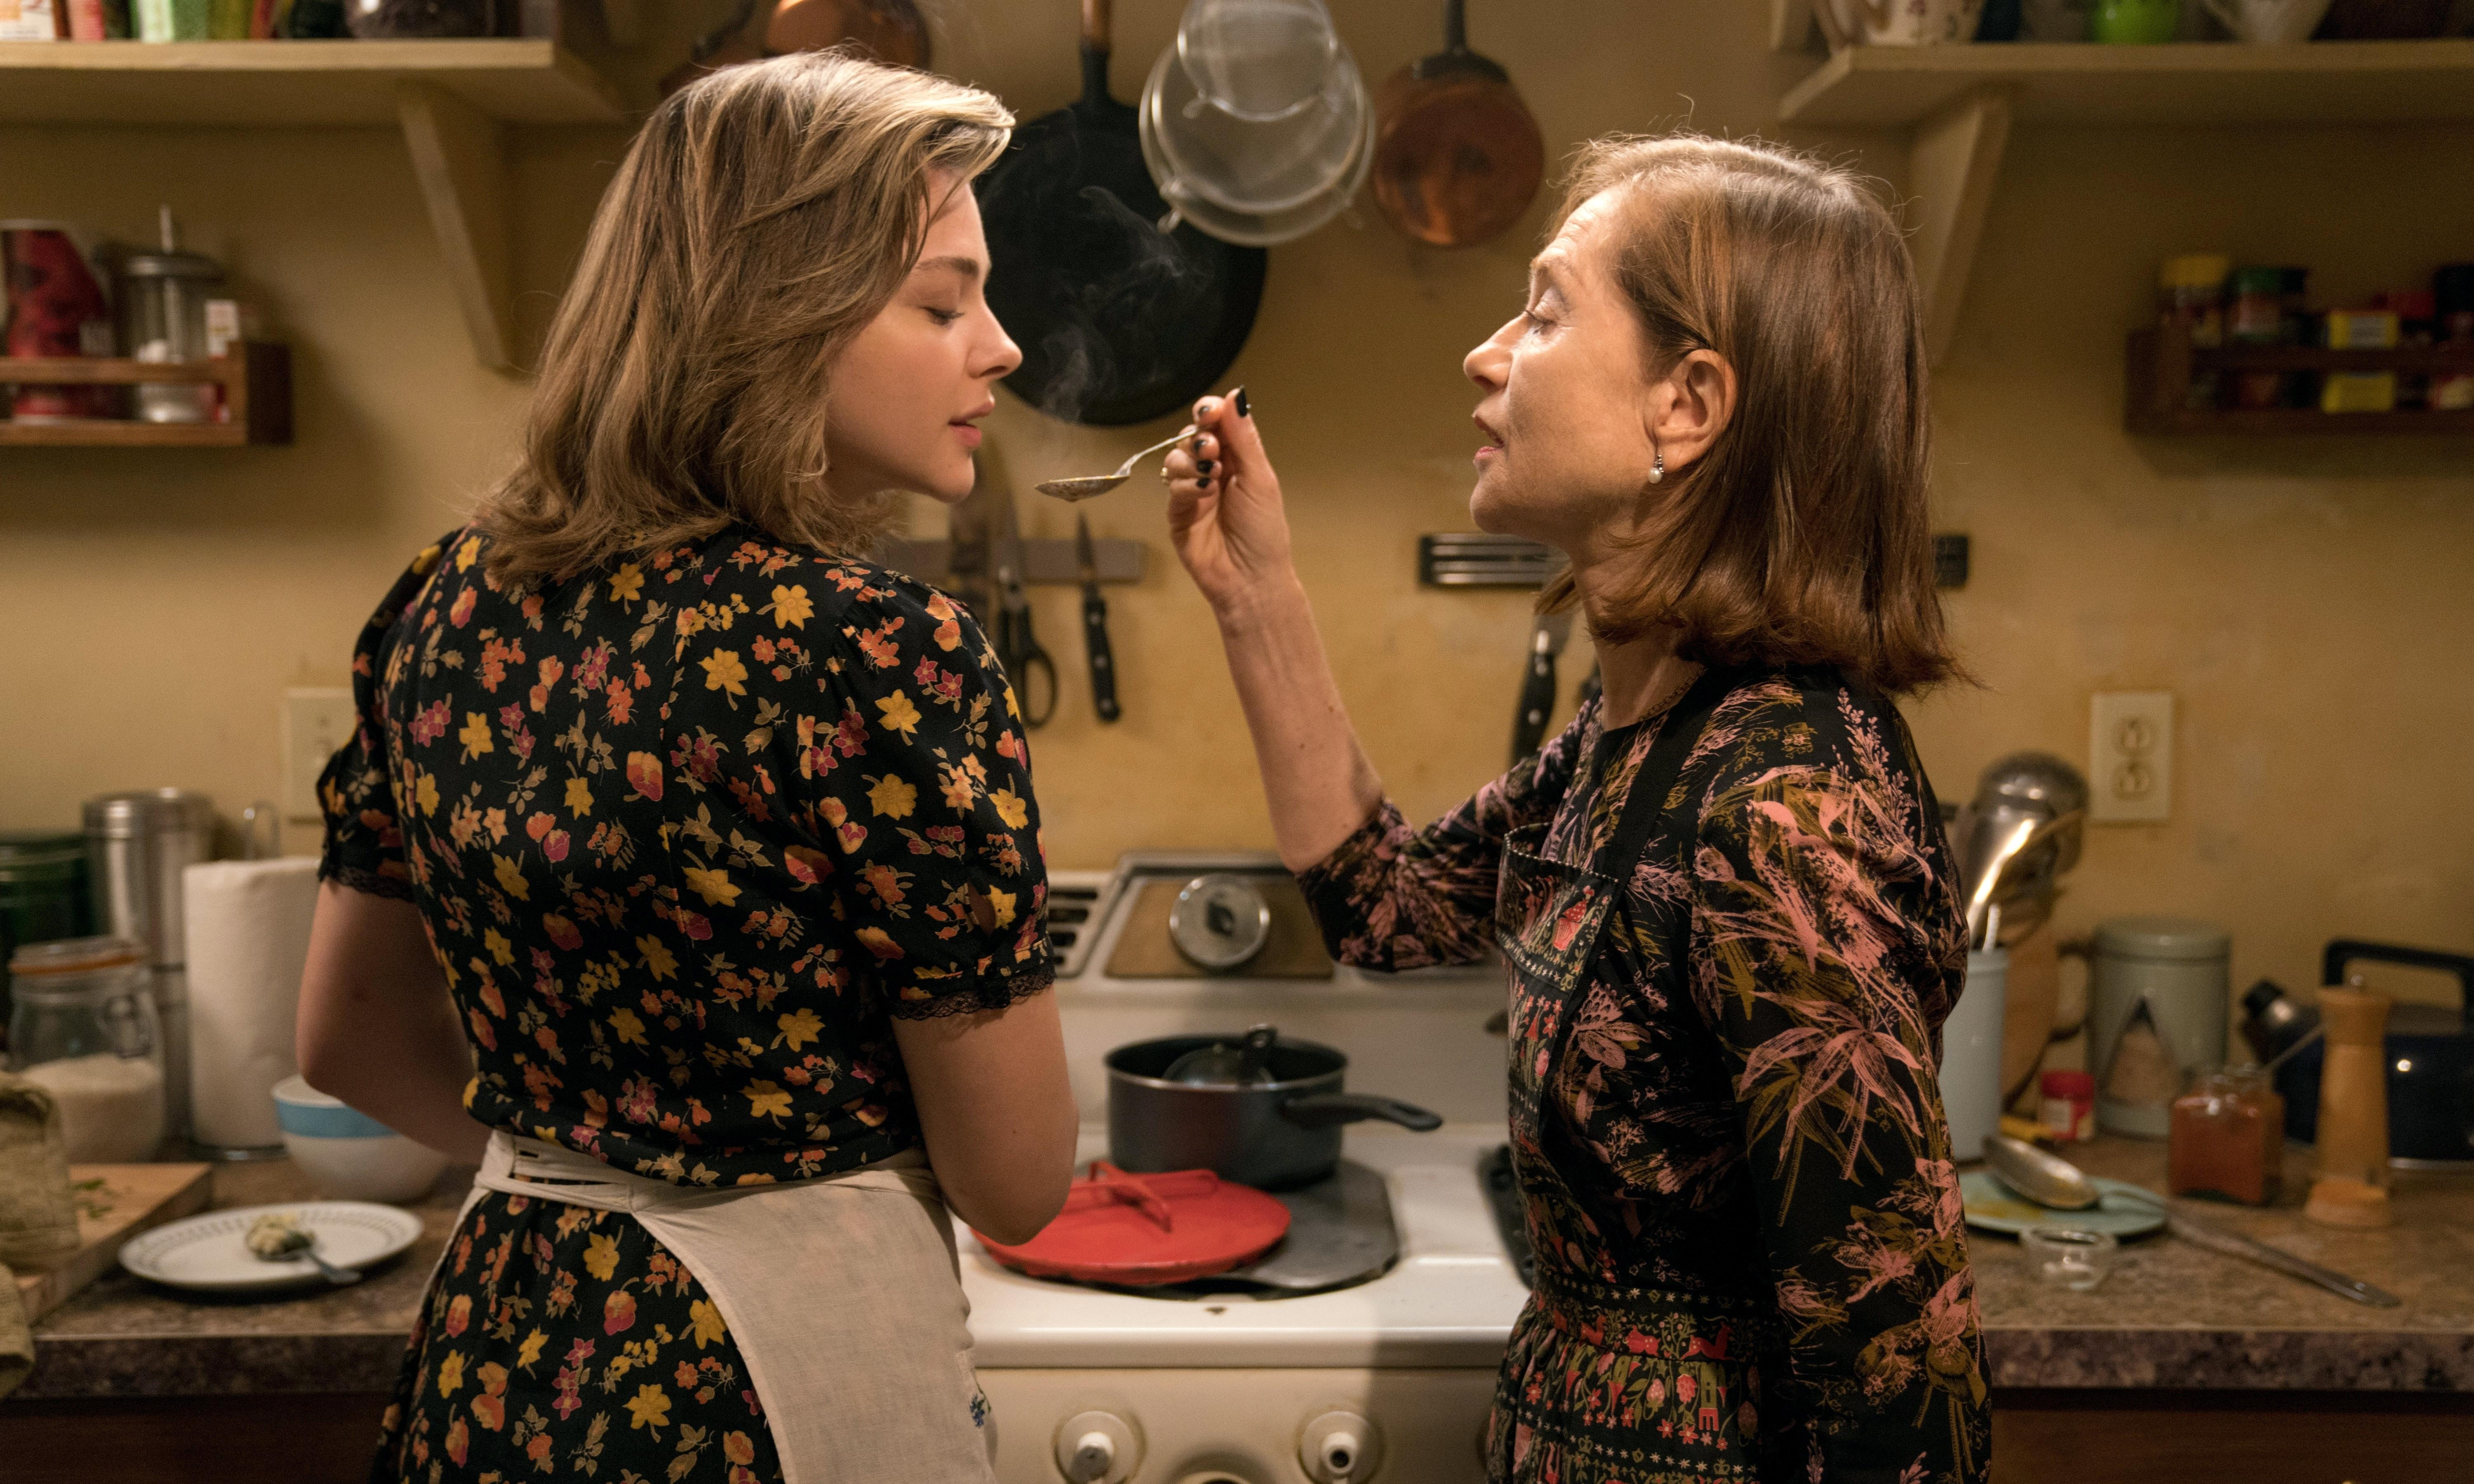 Greta review – Isabelle Huppert gives scary crockery-smashing turn